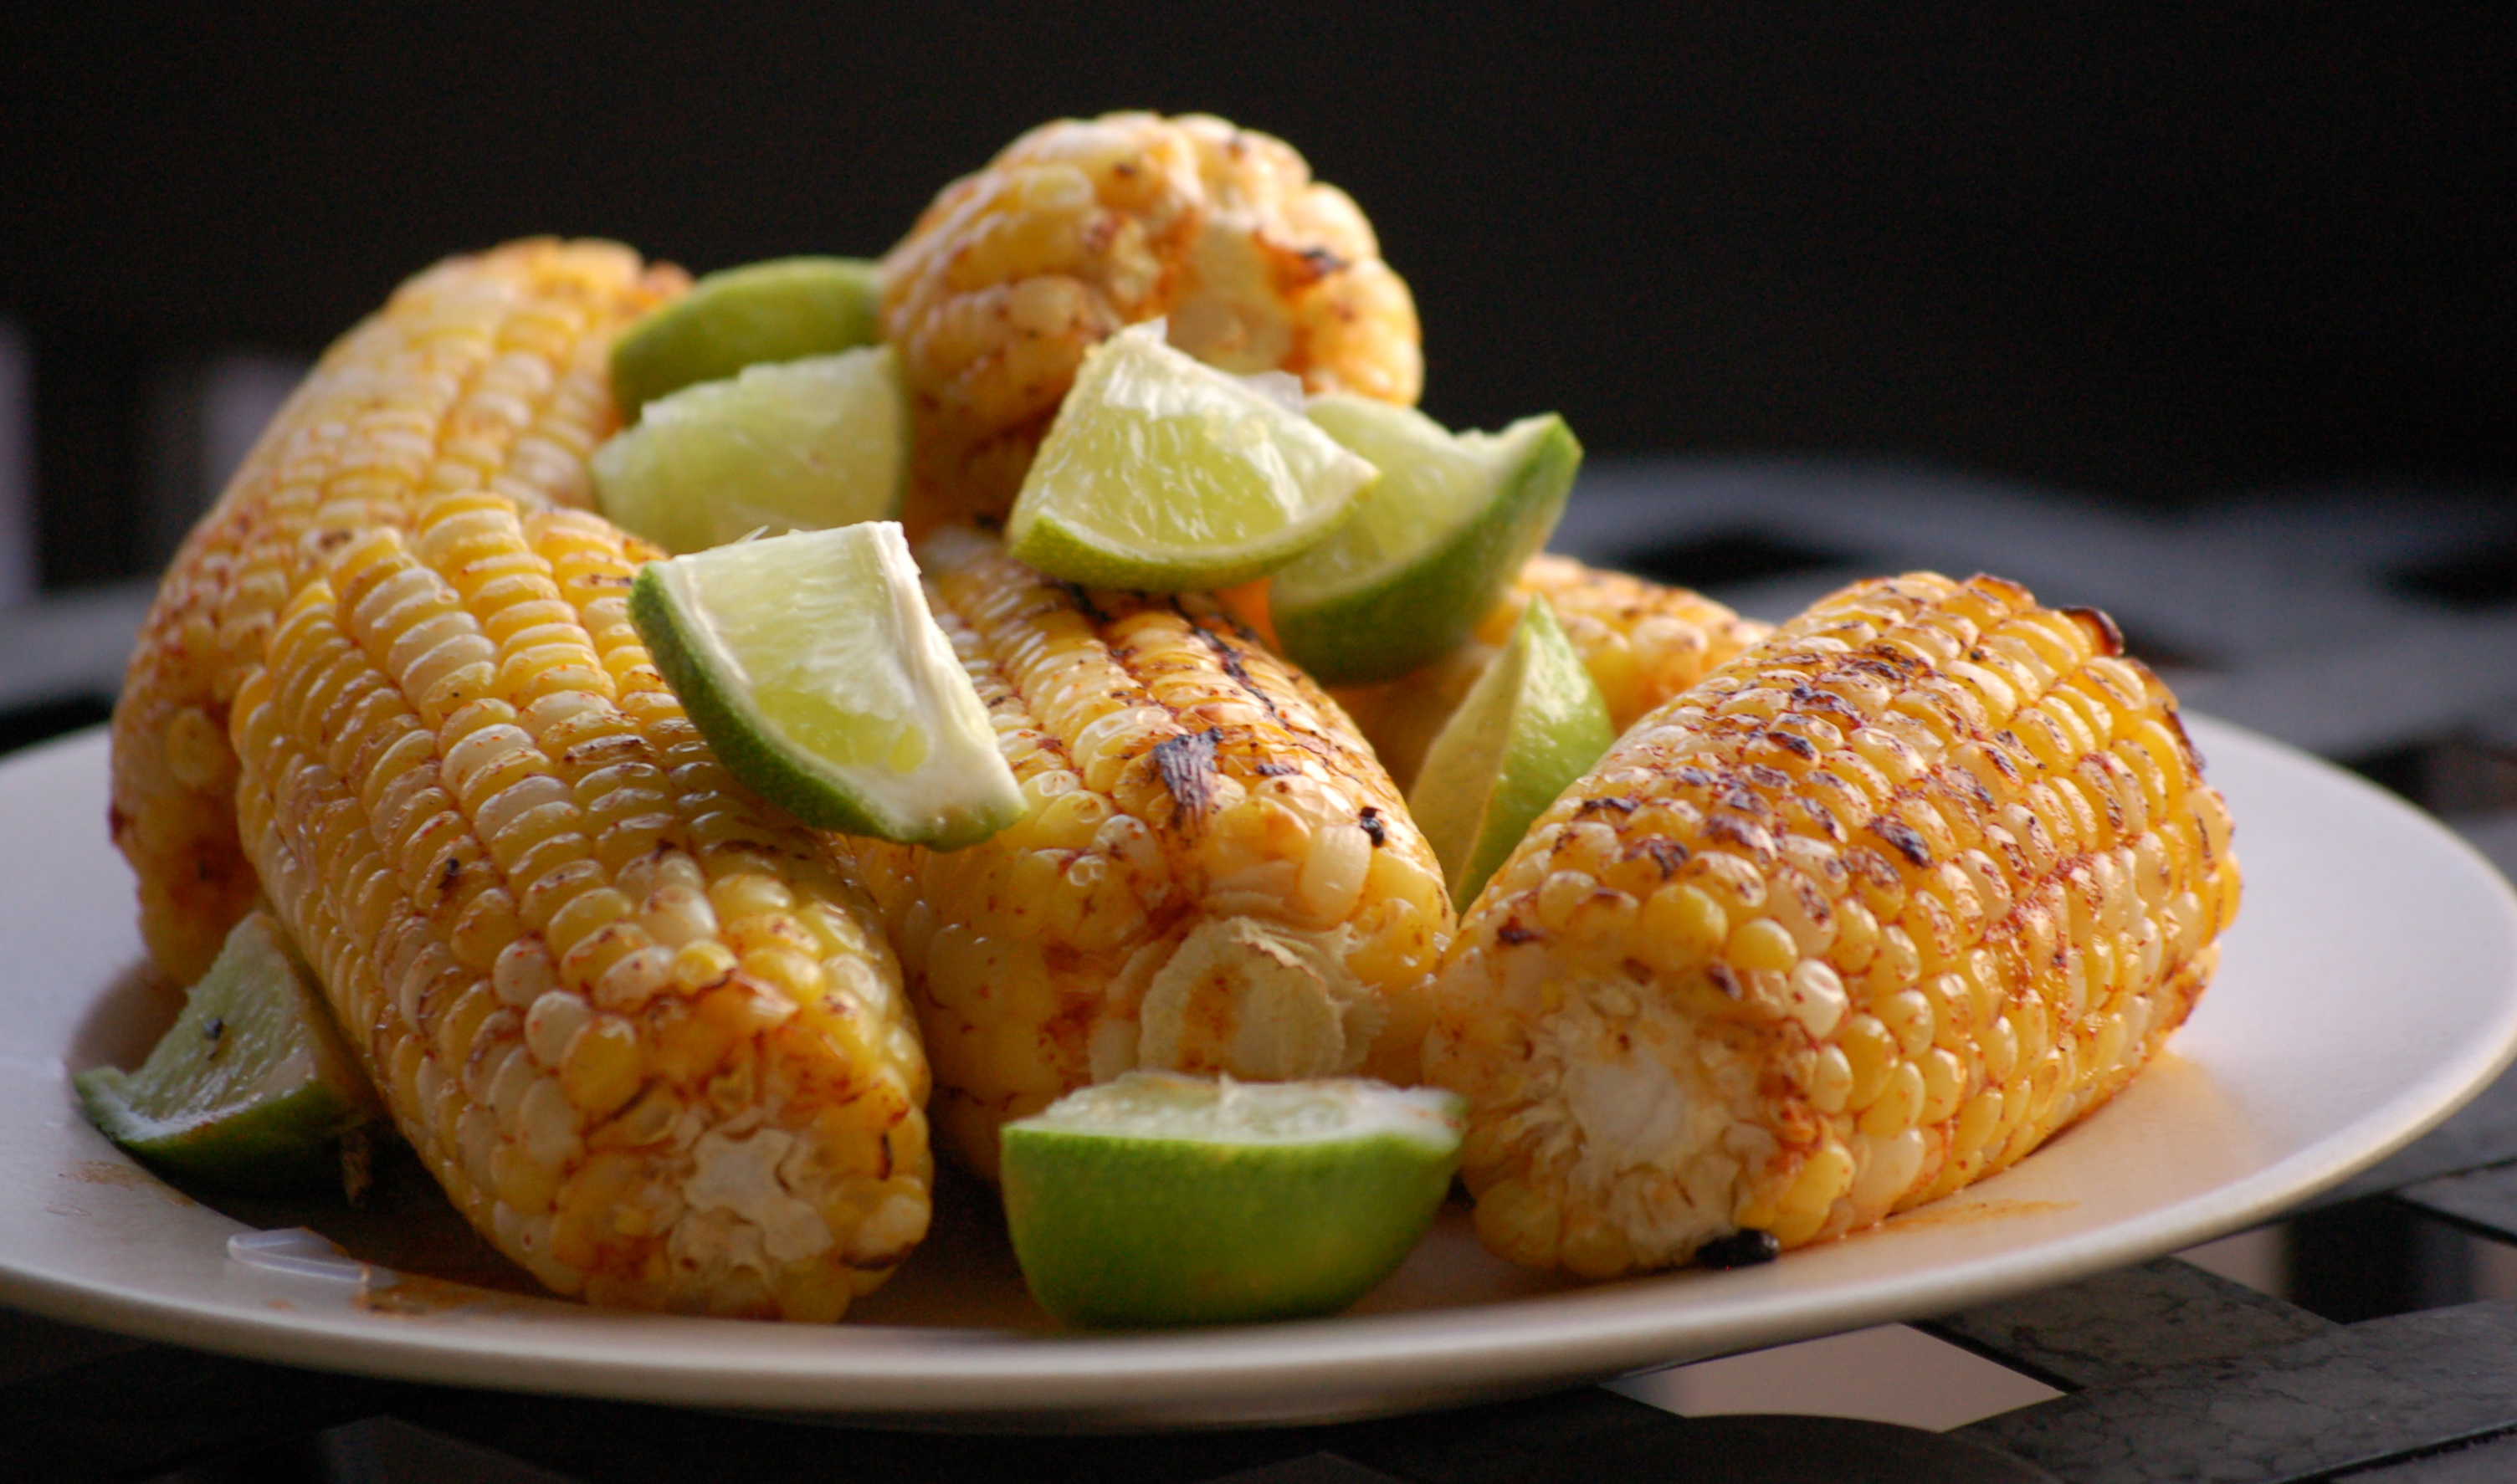 Chili-Lime Infused Corn On The Cob | ZINNRUNNER